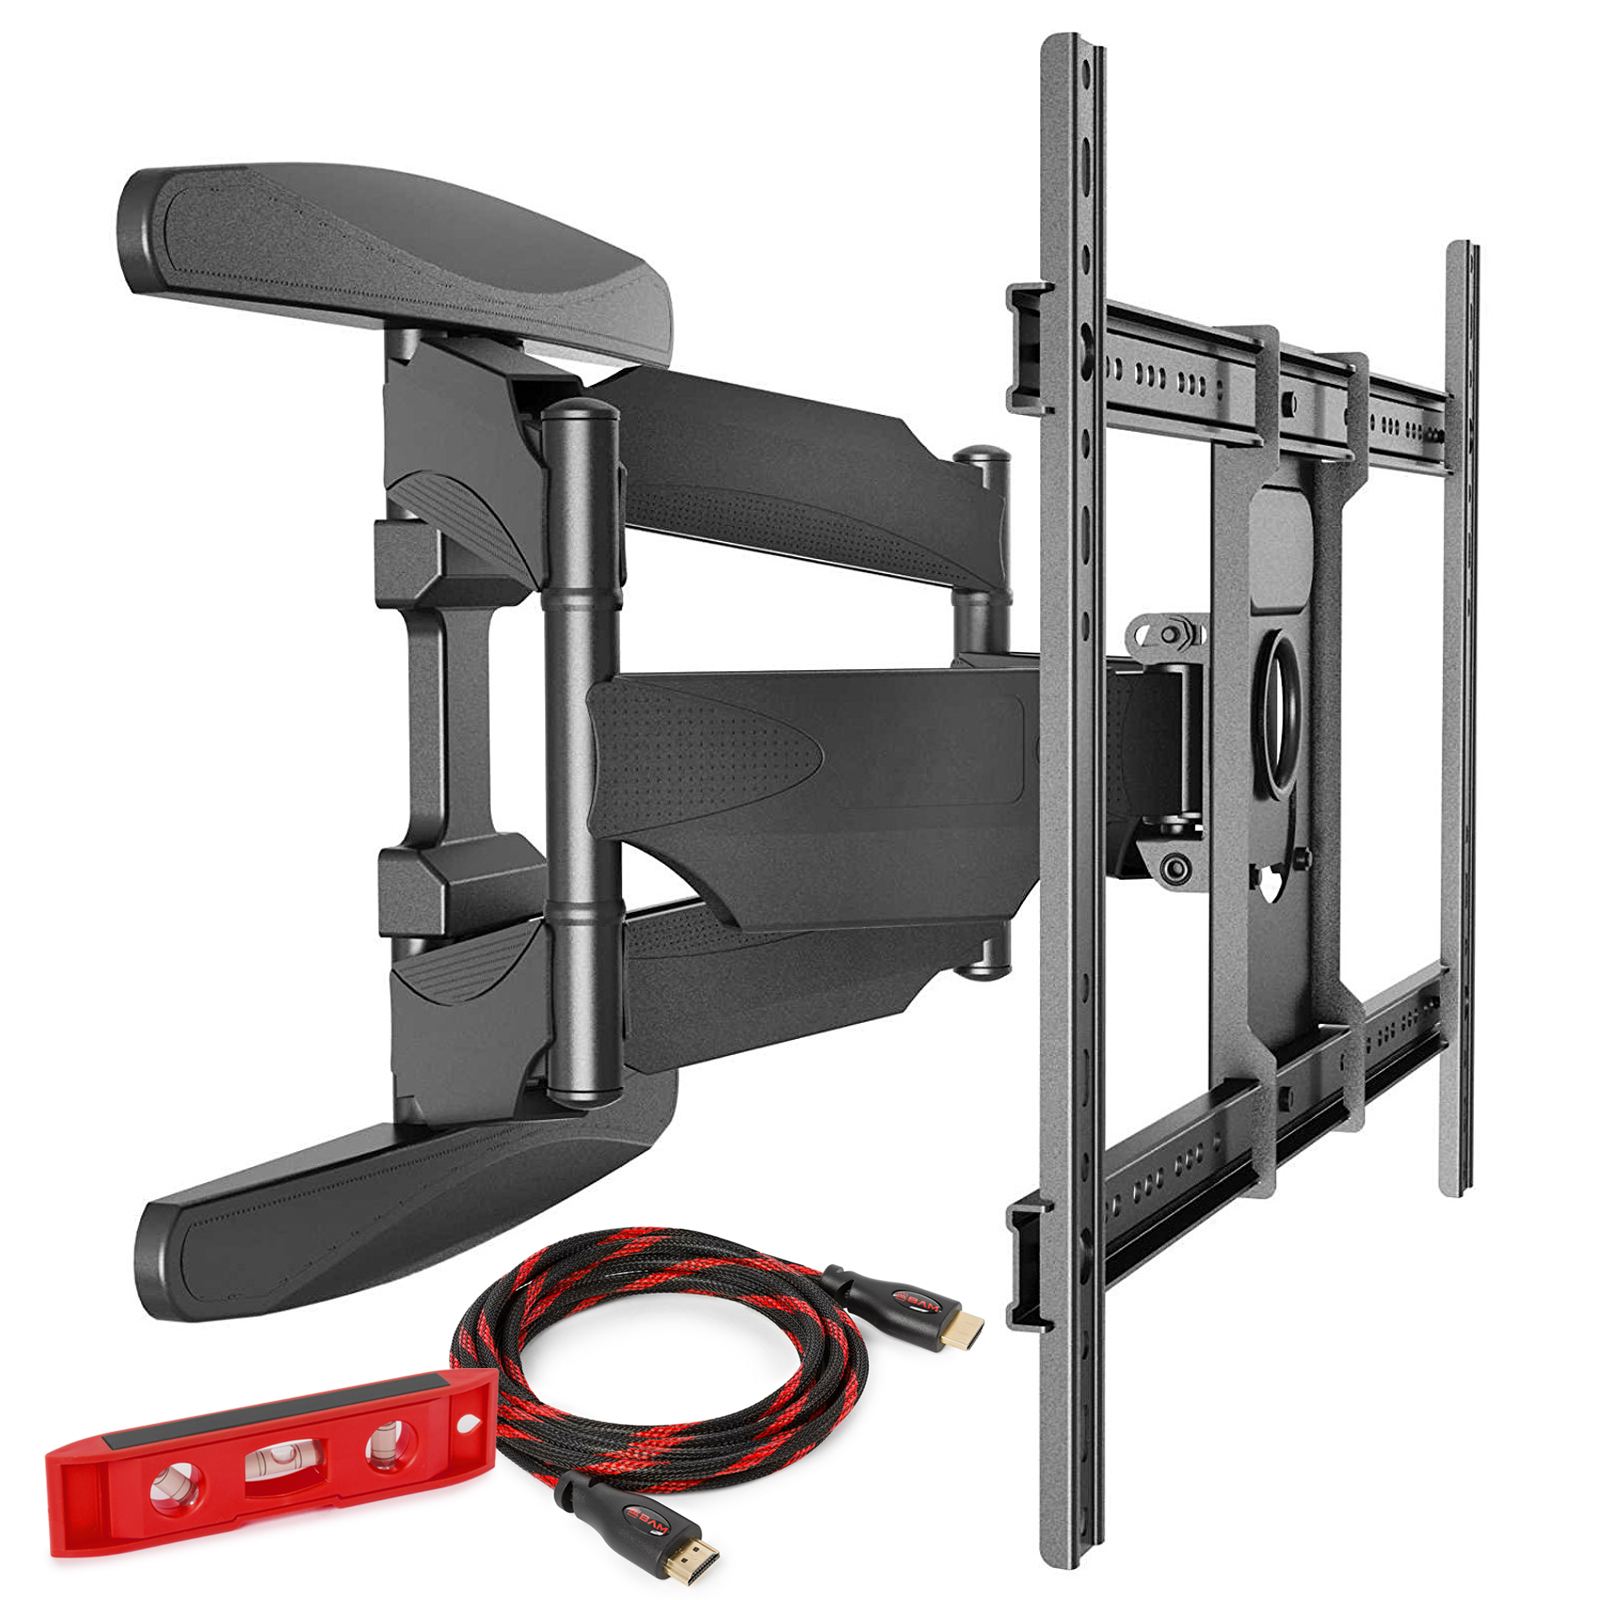 Mountio Heavy Duty Full Motion Articulating Tilt Swivel TV Wall Mount Extension Universal Bracket for 40???-70??? Flat Screen LED OLED QLED Televisions